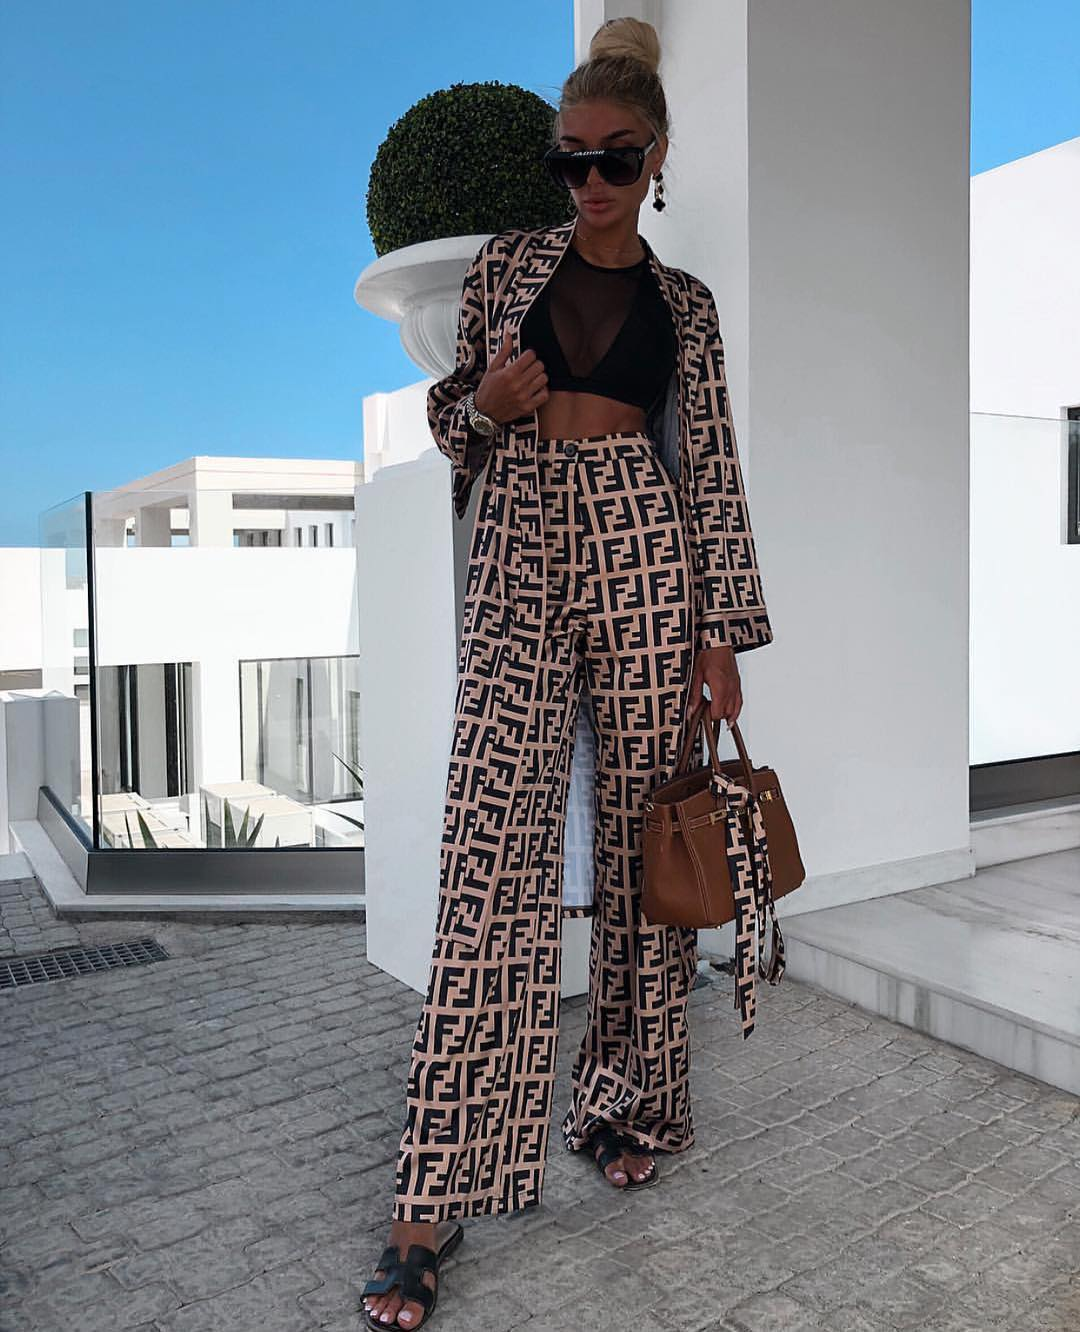 Printed Pantsuit With Wide Pants For Summer Vacation 2020